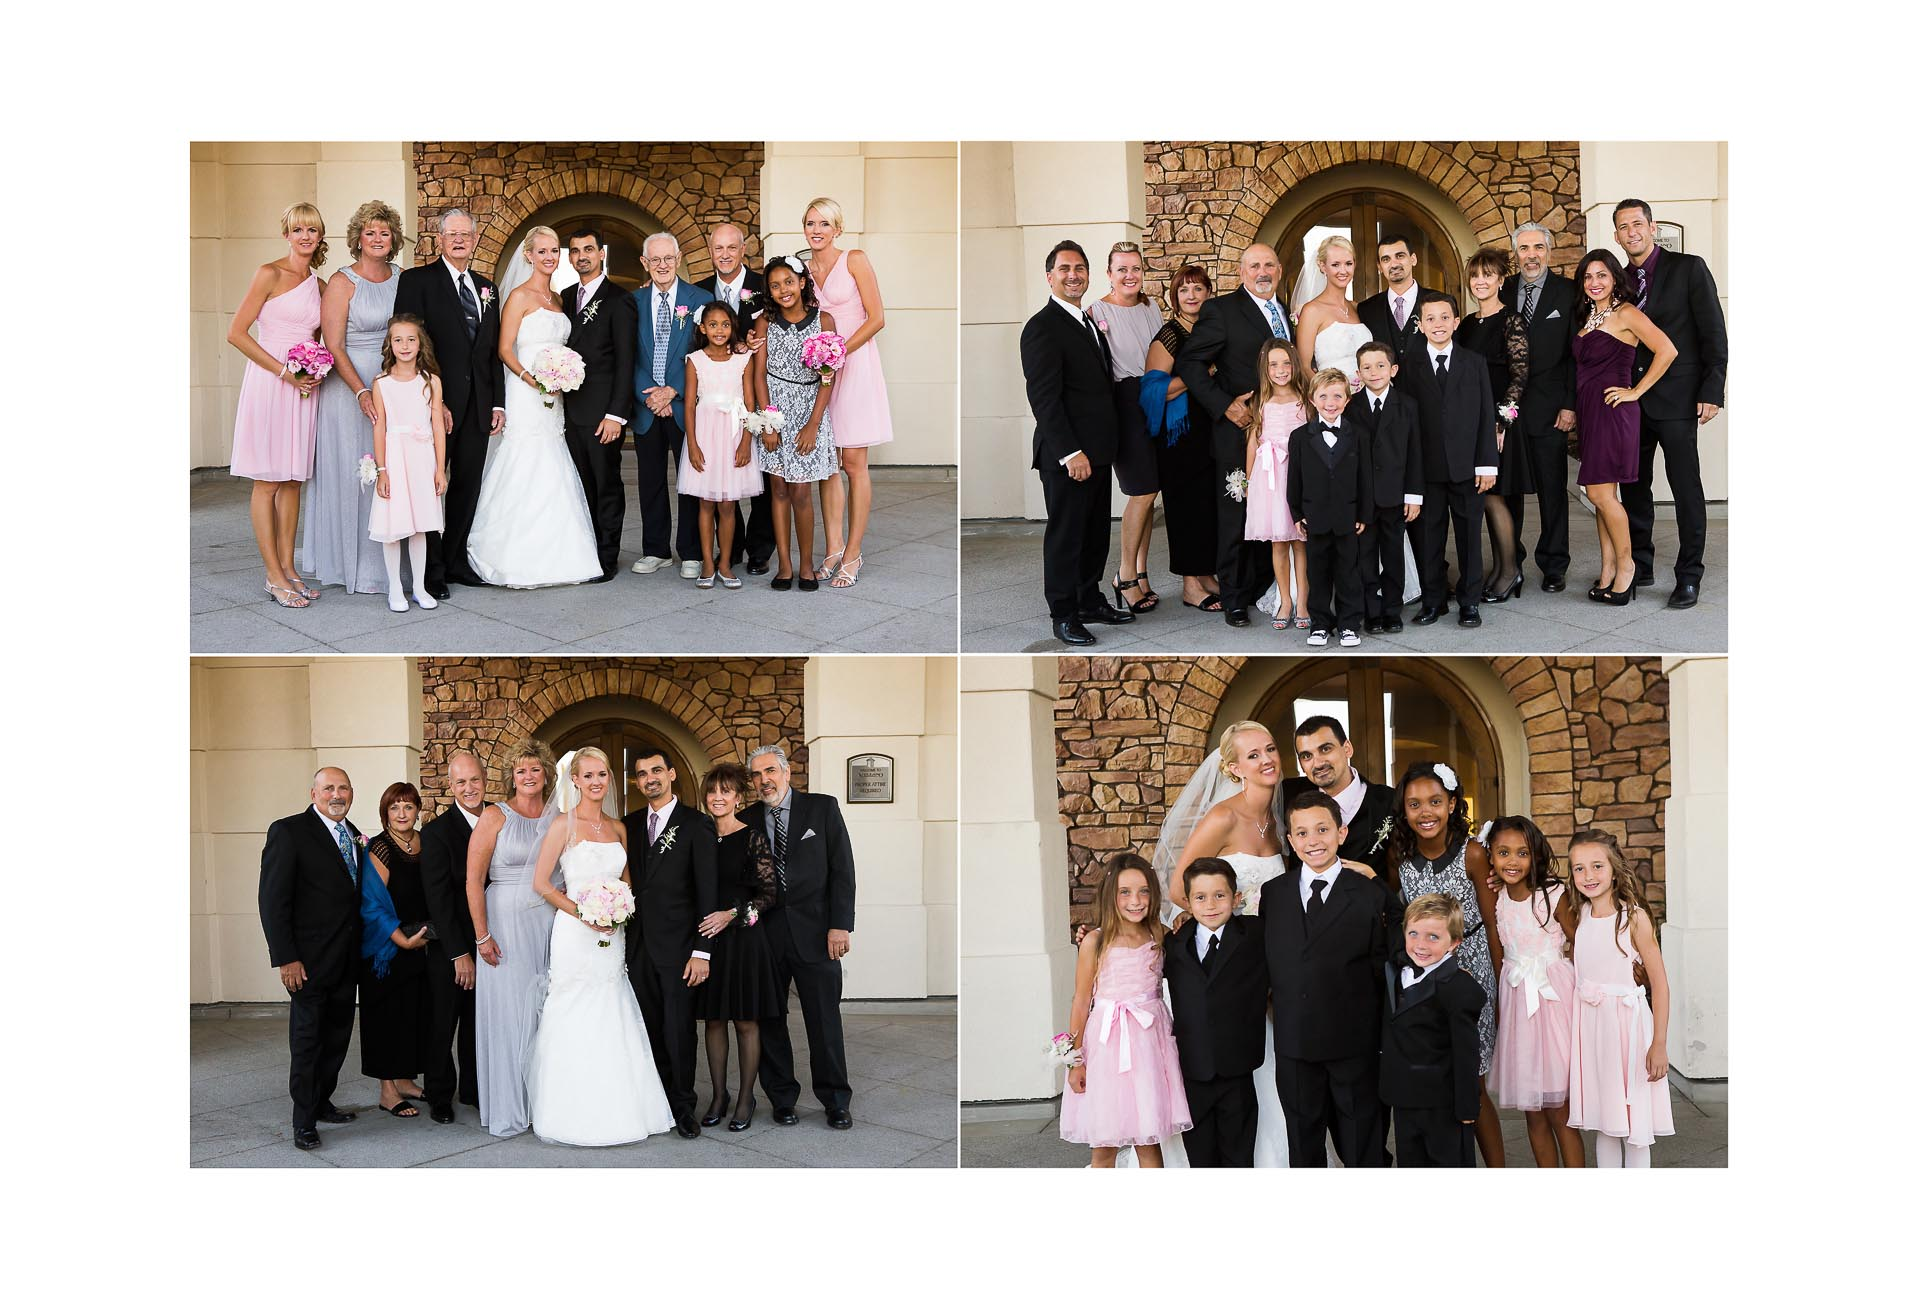 chino hills wedding photos